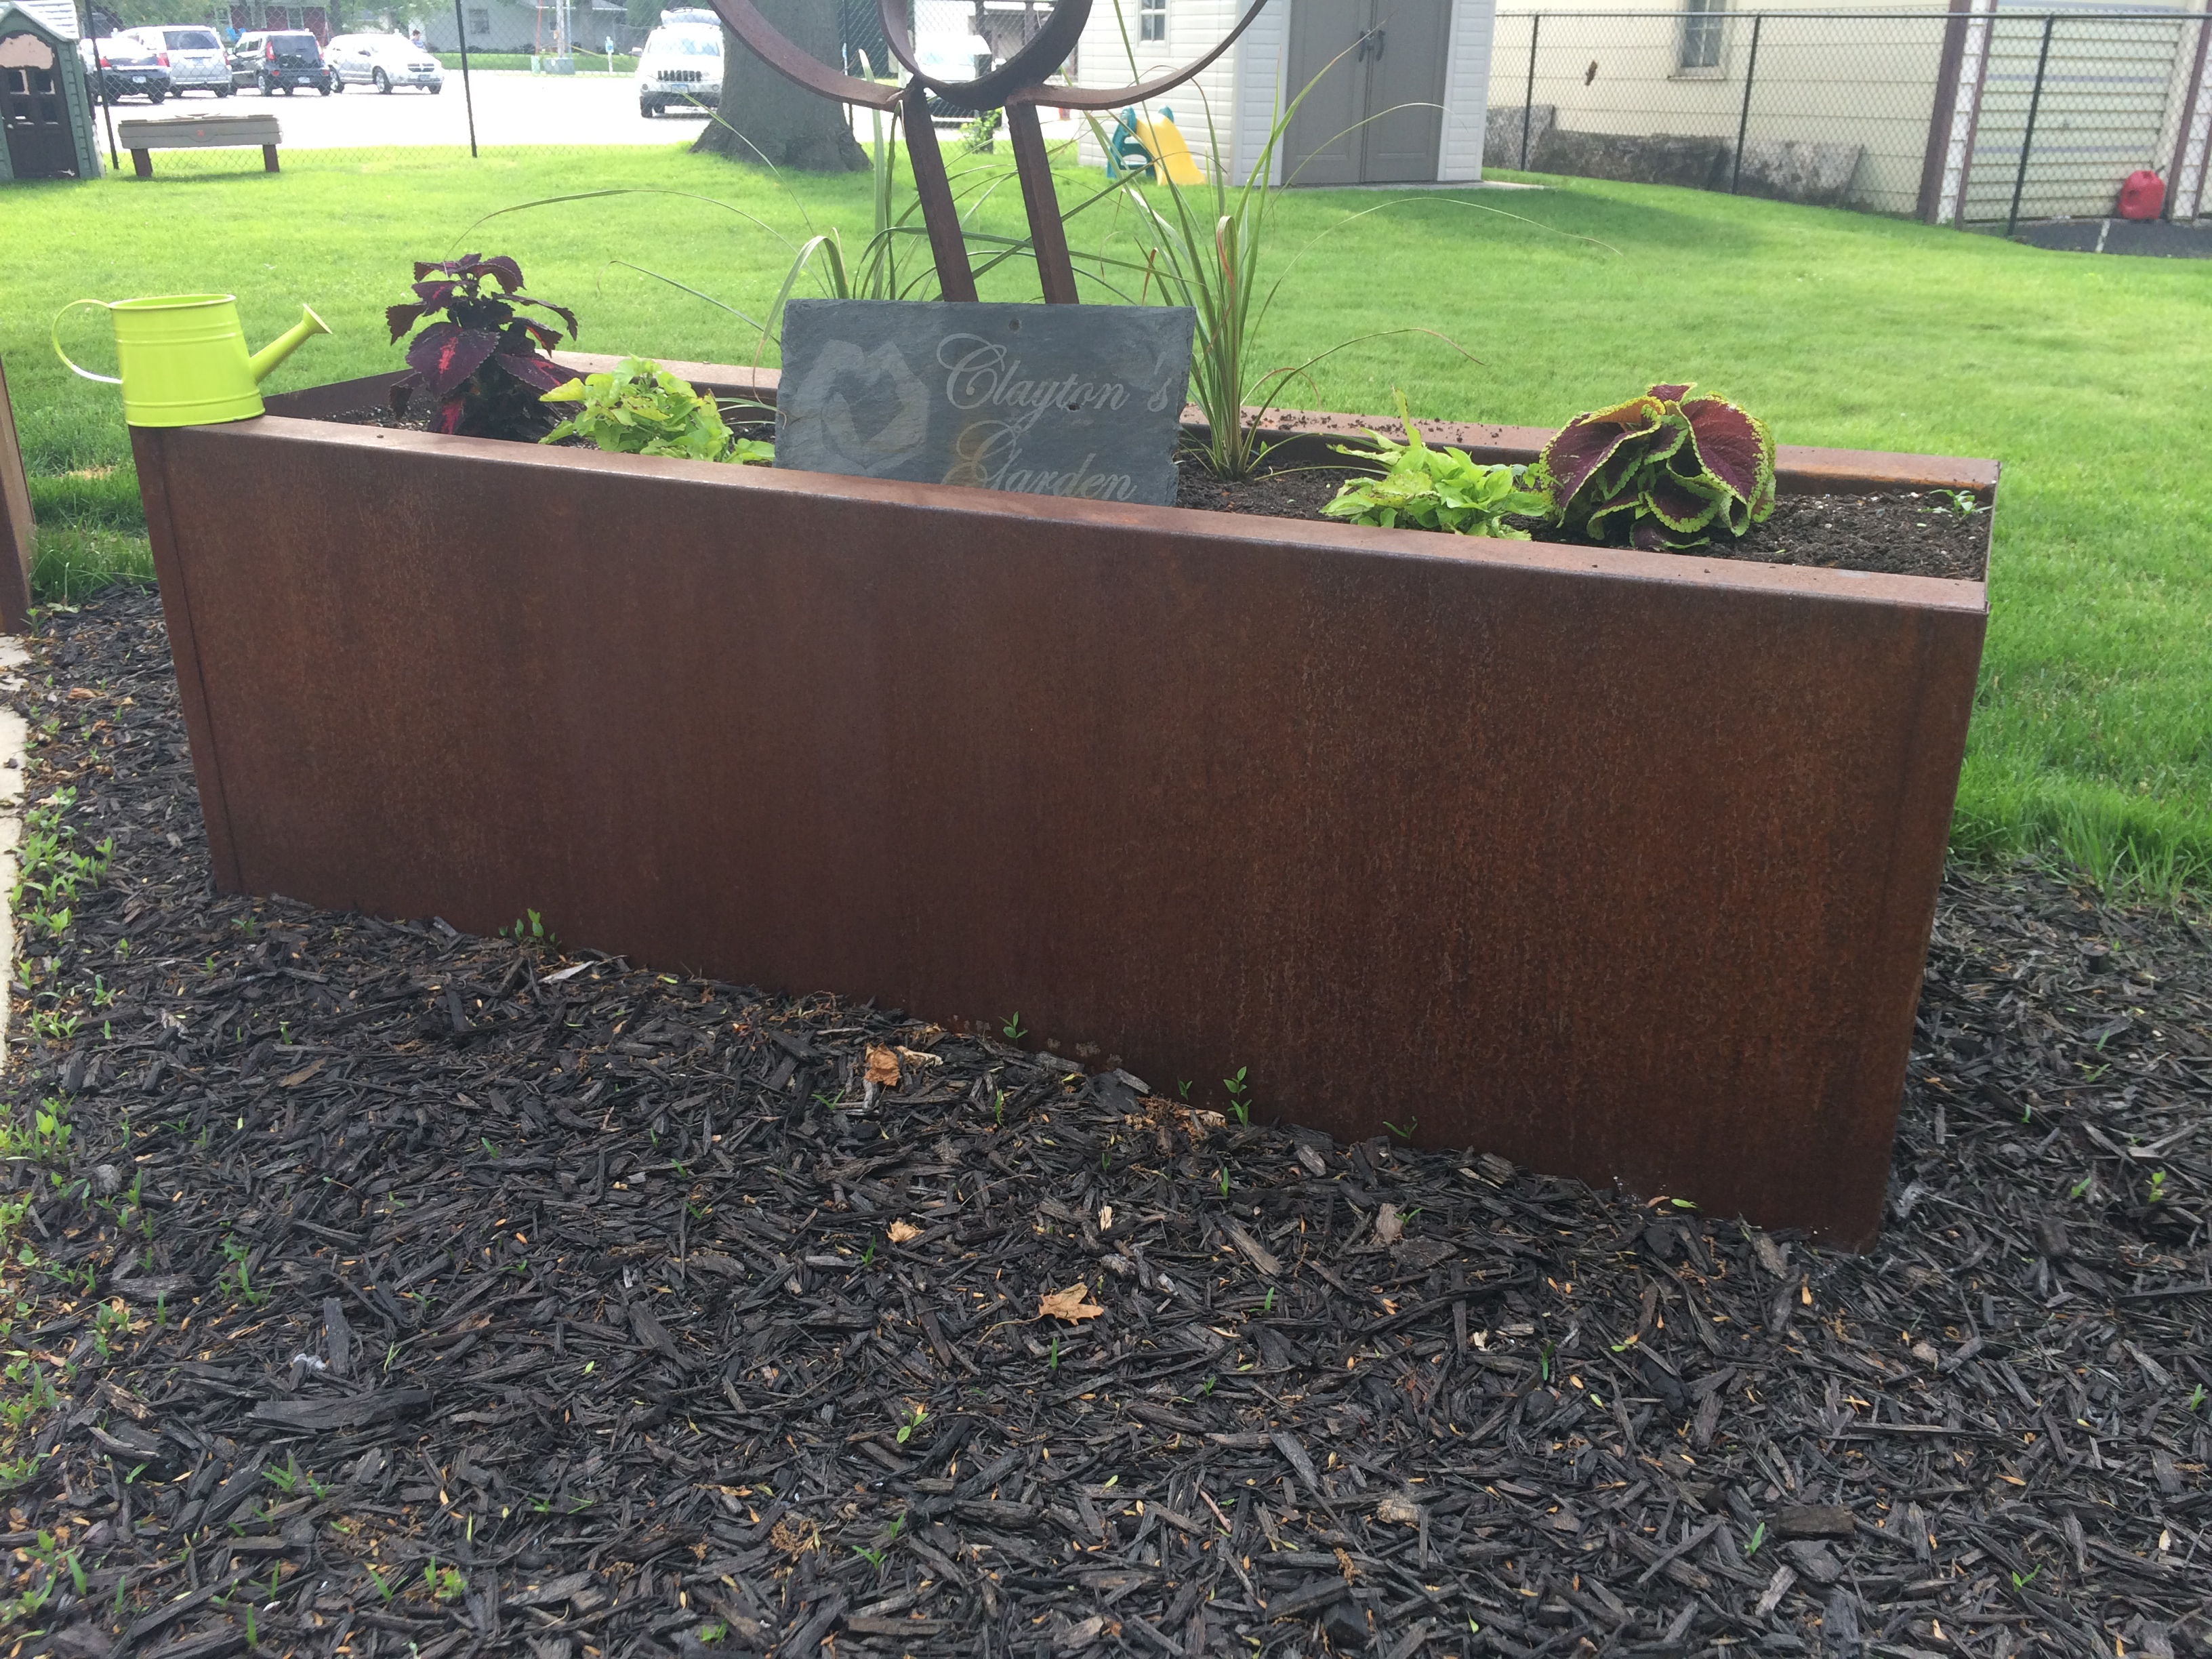 16 Gauge A606-4 Steel ( AKA Corten ) Planter Box